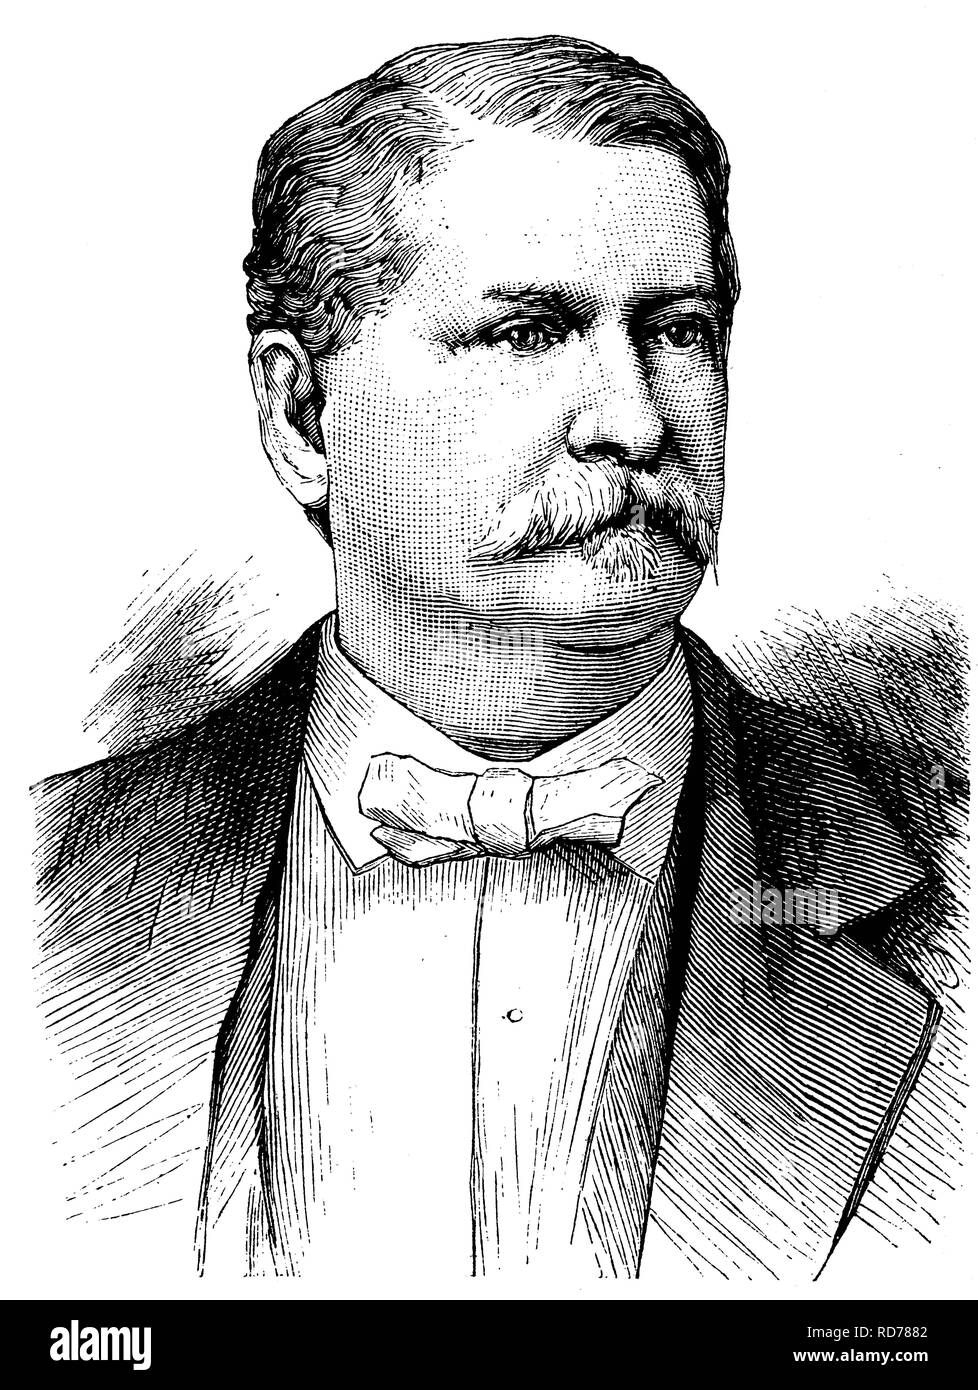 Winfield Scott Hancock, 1824-1886, Major-General of the U.S. Army, Democratic candidate for the US Presidential elections - Stock Image